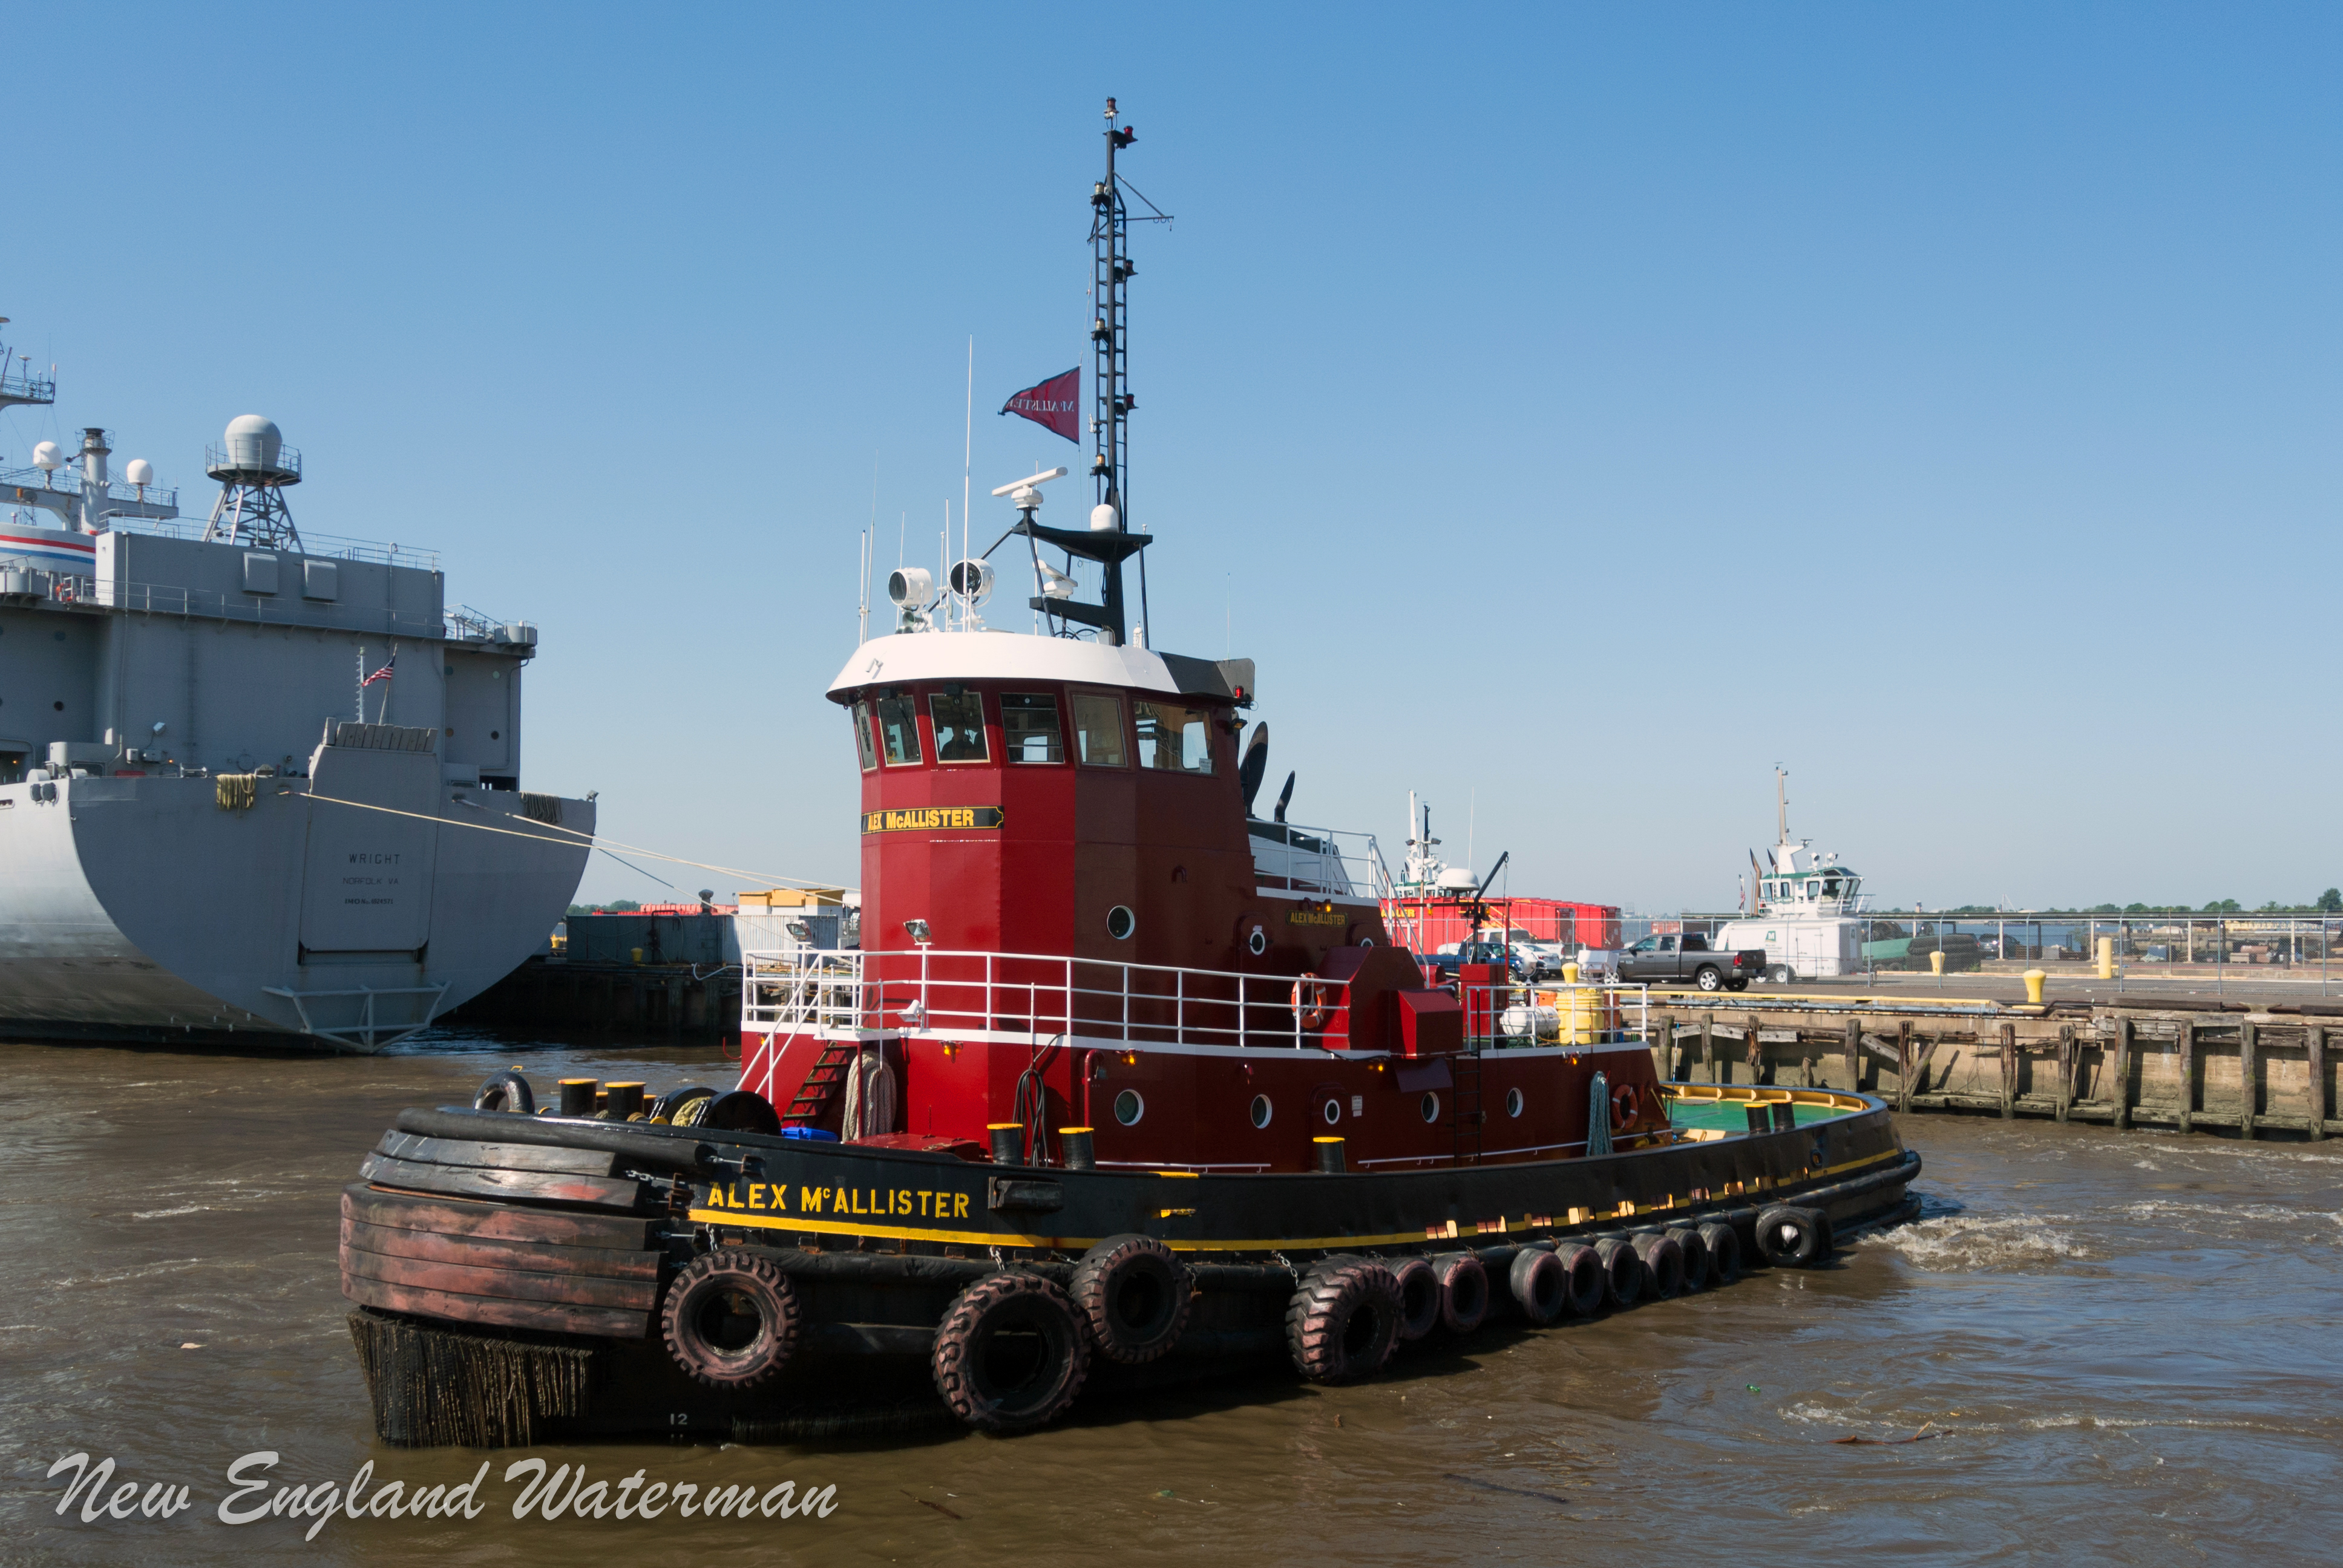 New England Waterman | The photos and musings of a Tugboater